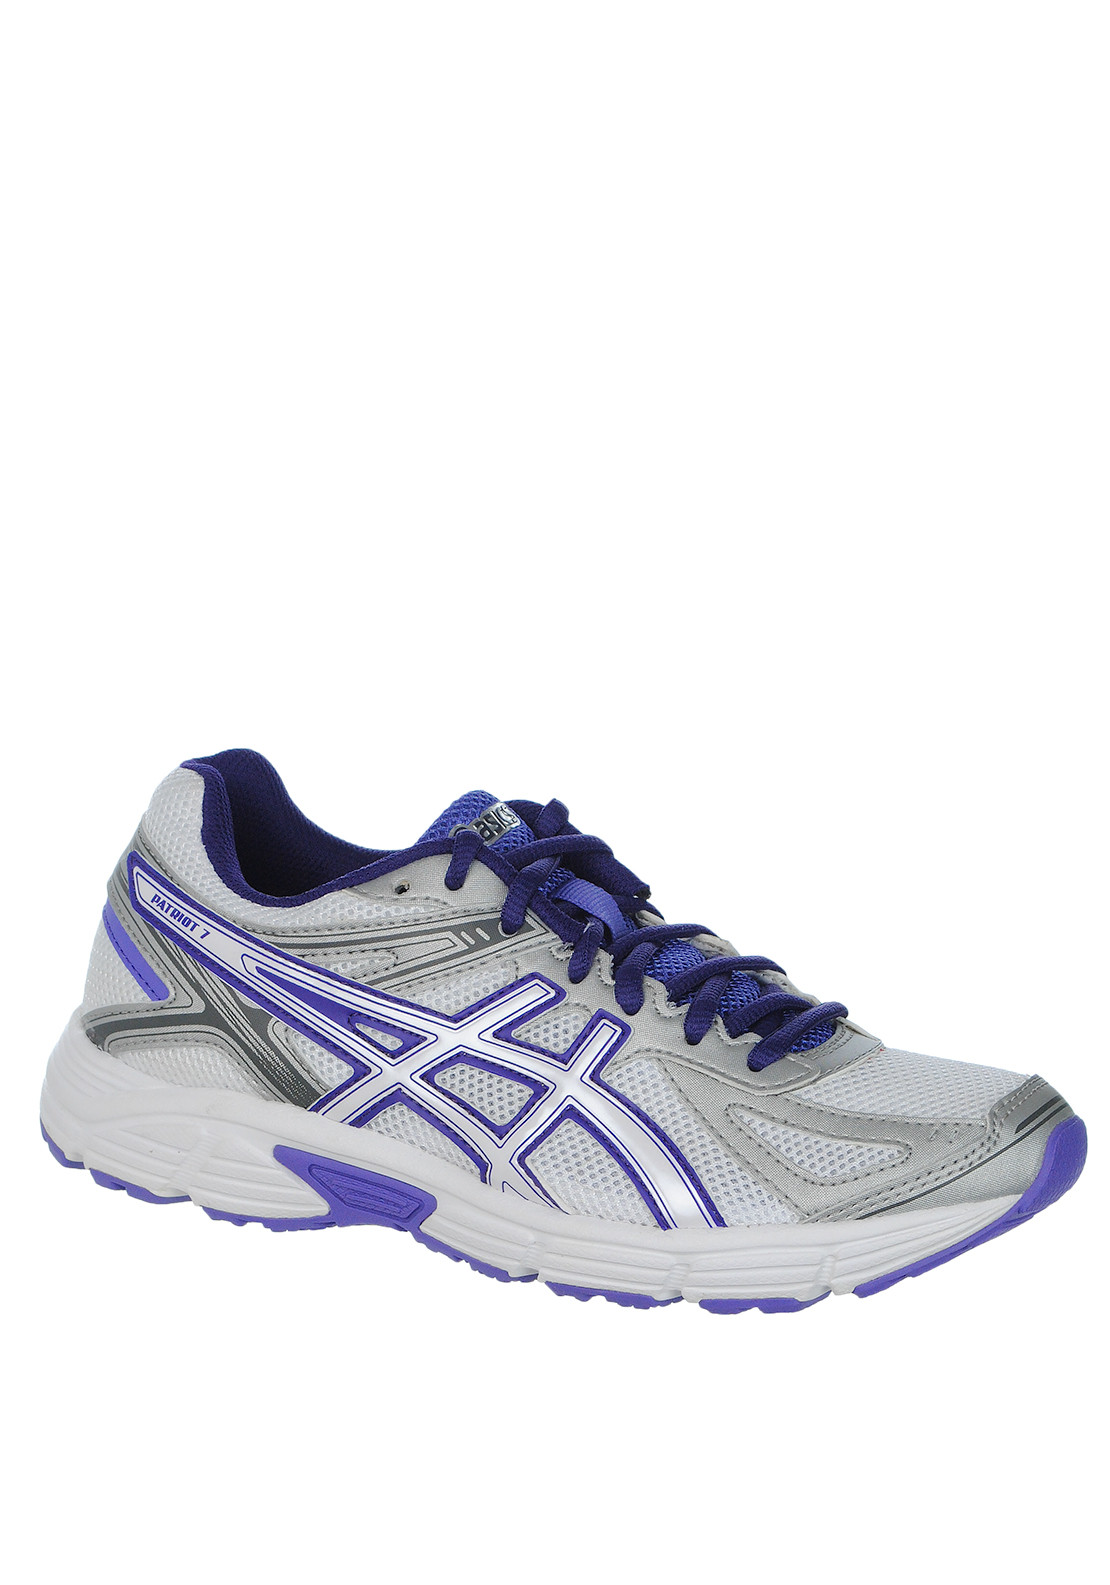 Asics Womens Patriot 7 Trainer, White/Purple